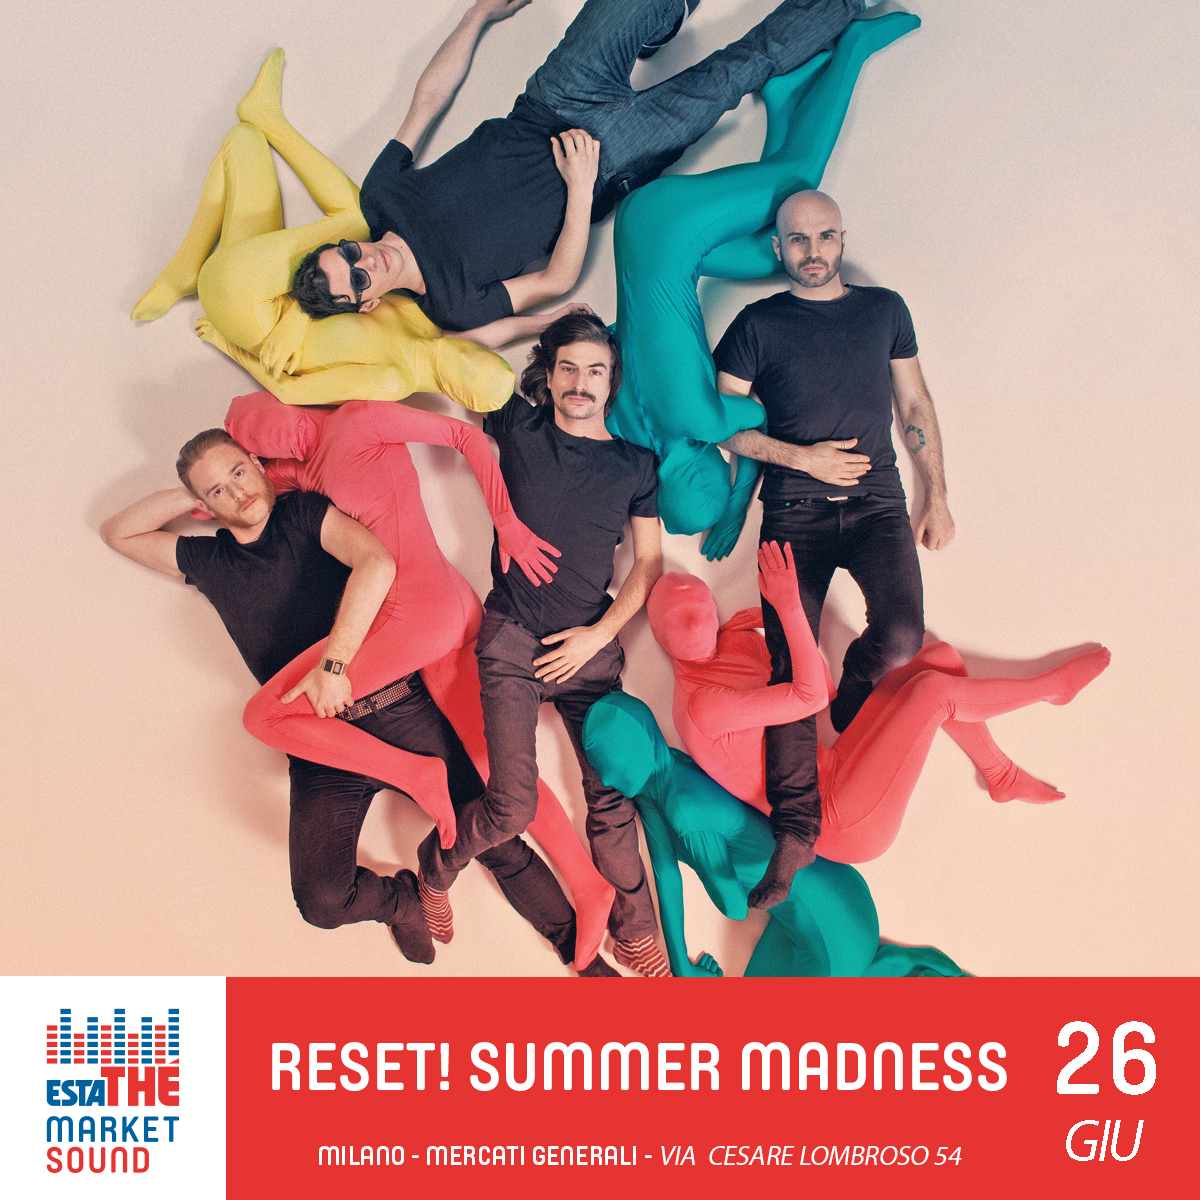 RESET! SUMMER MADNESS